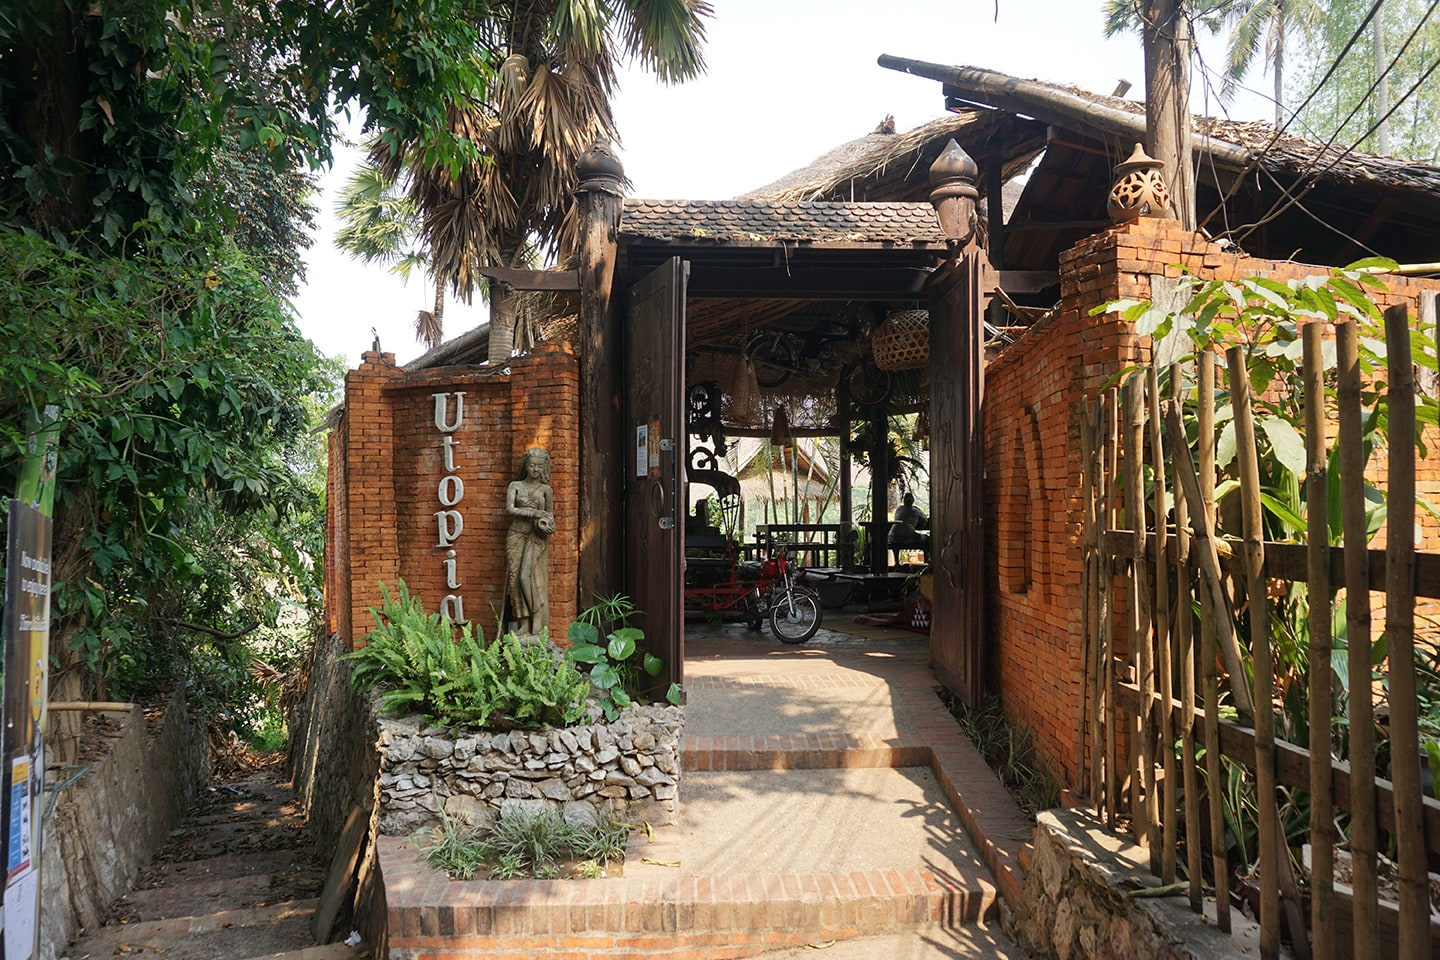 Utopia - restaurant in Luang Prabang